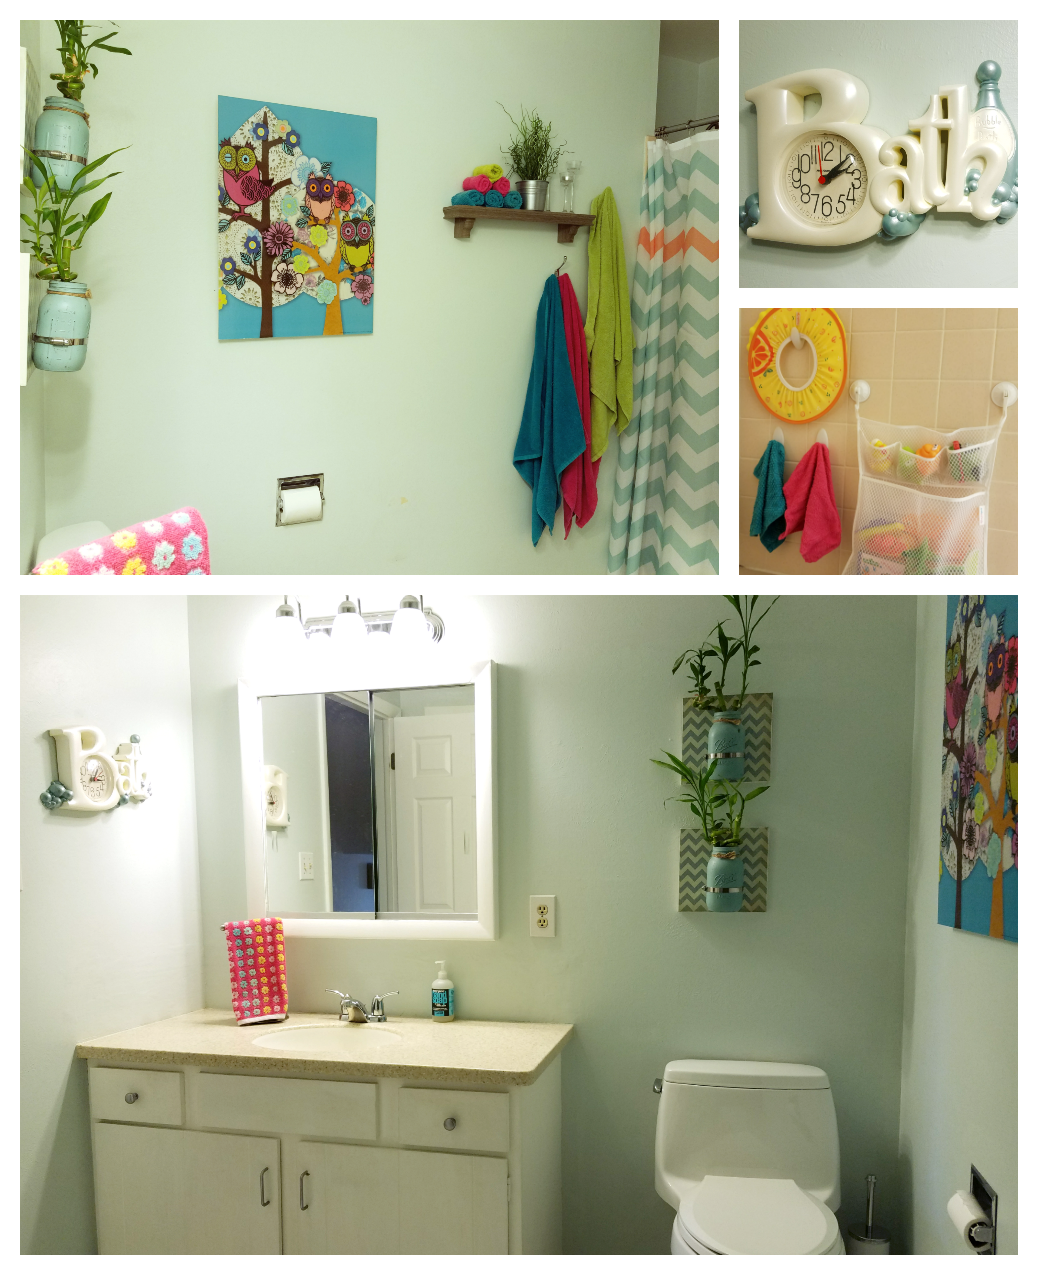 Trend bright colors and patterns cheery paint color child locks on bathroom cabinets bathroom